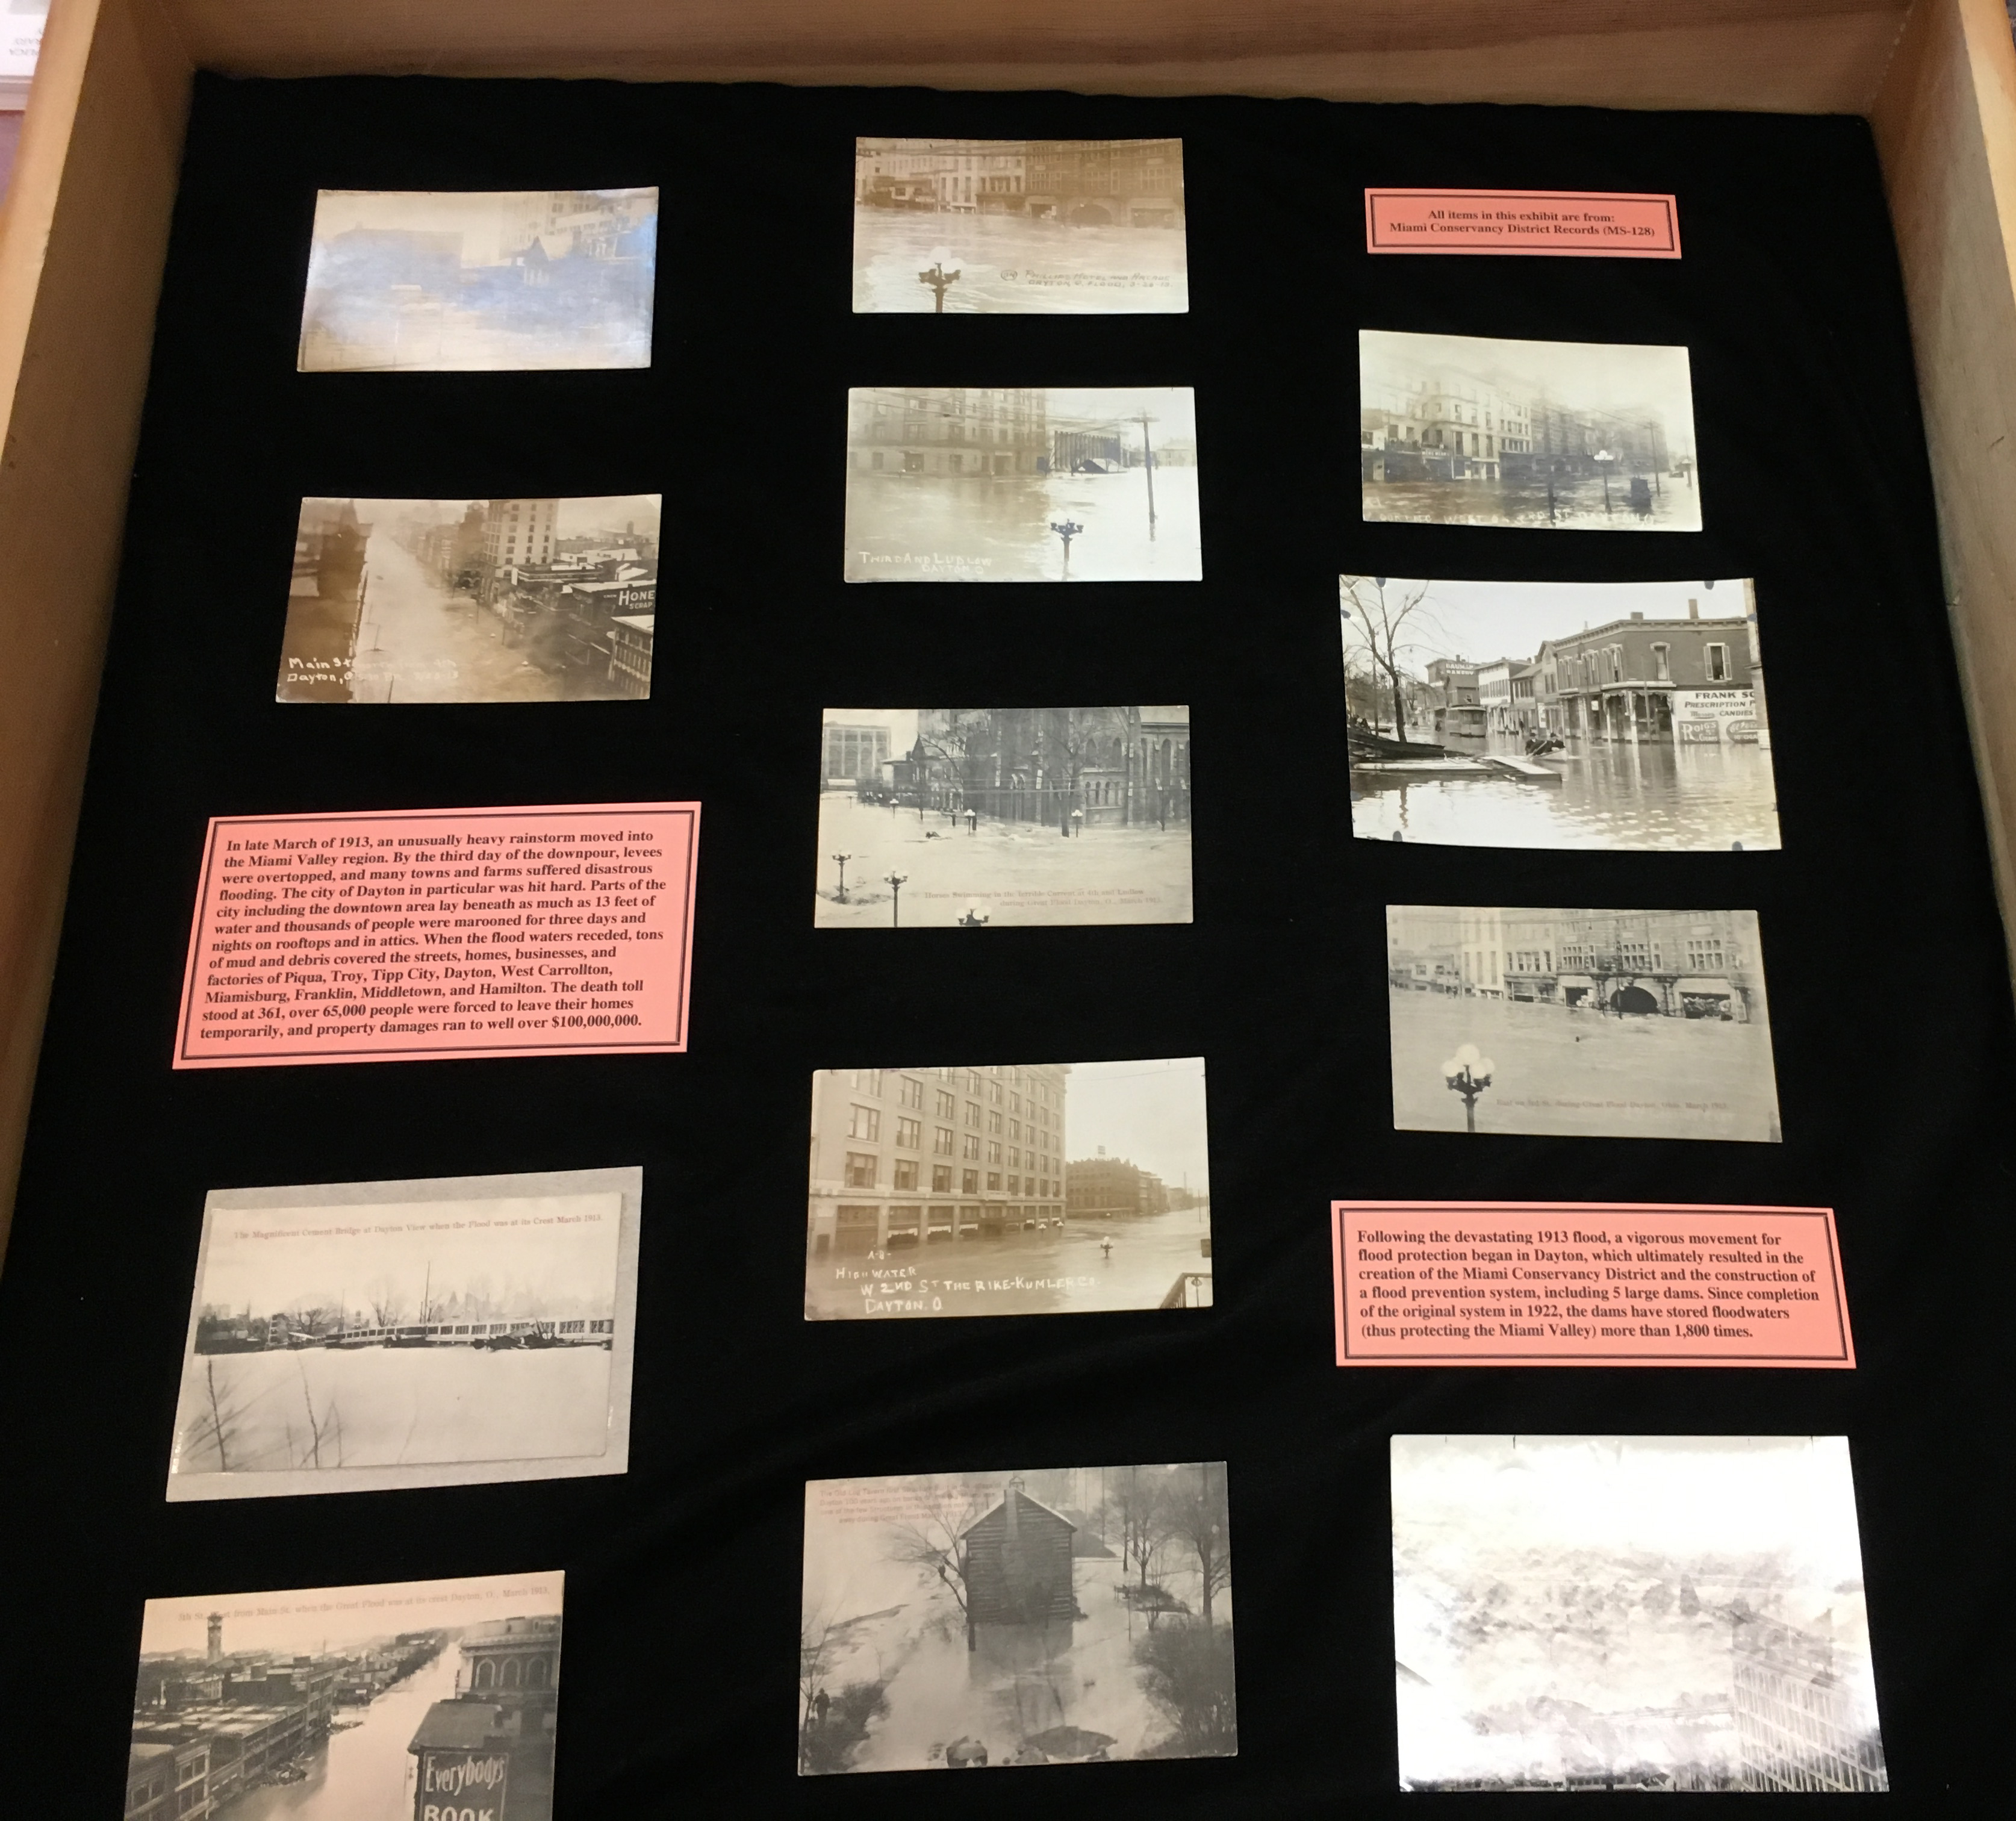 1913 Flood postcards & photographs exhibit, March 2016